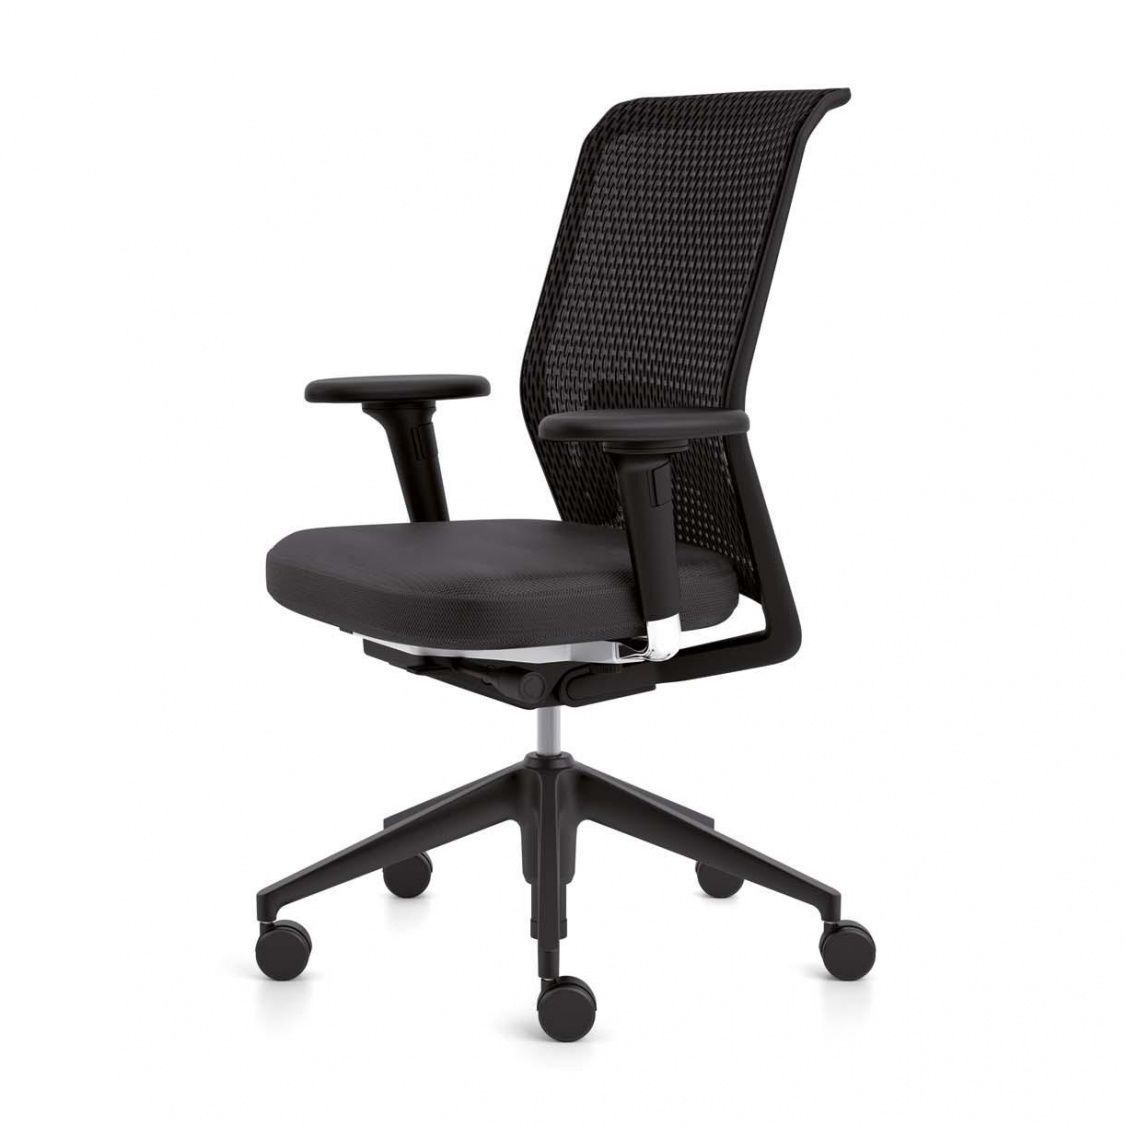 Vitra id mesh office chair vitra for Chair design basics